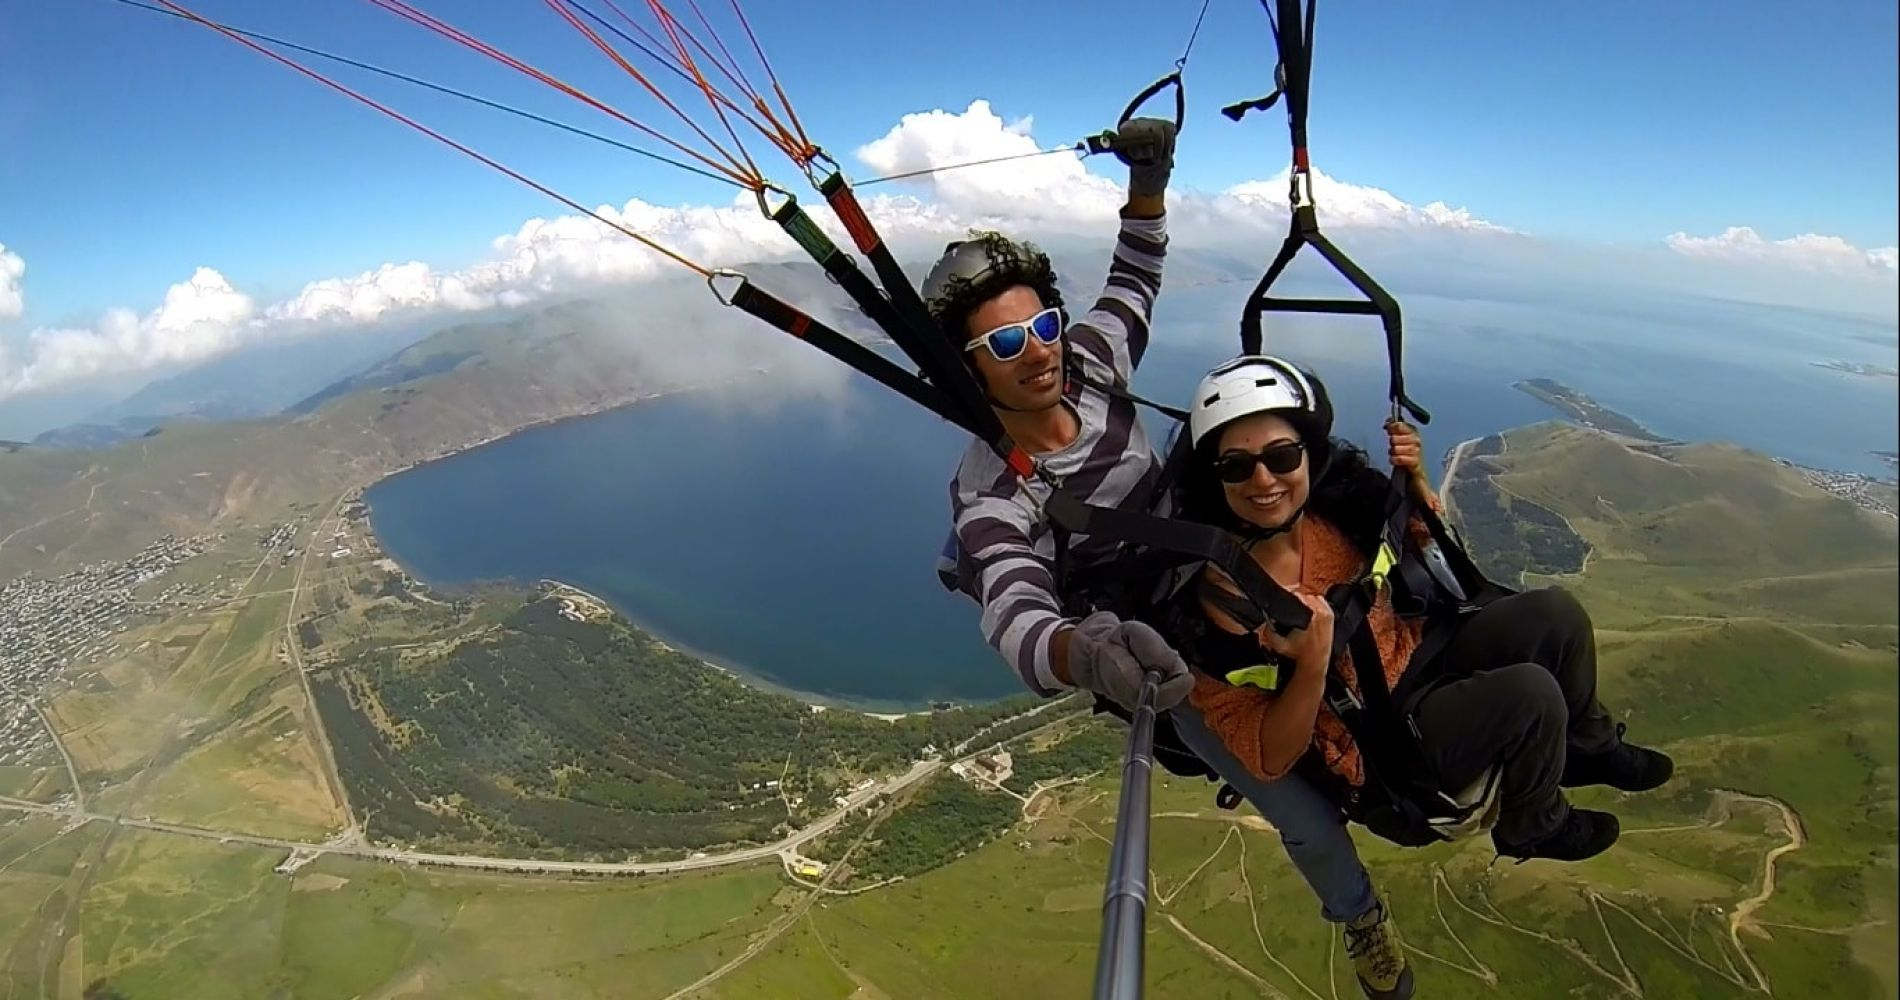 Mind-blowing Paragliding Experience in Armenia